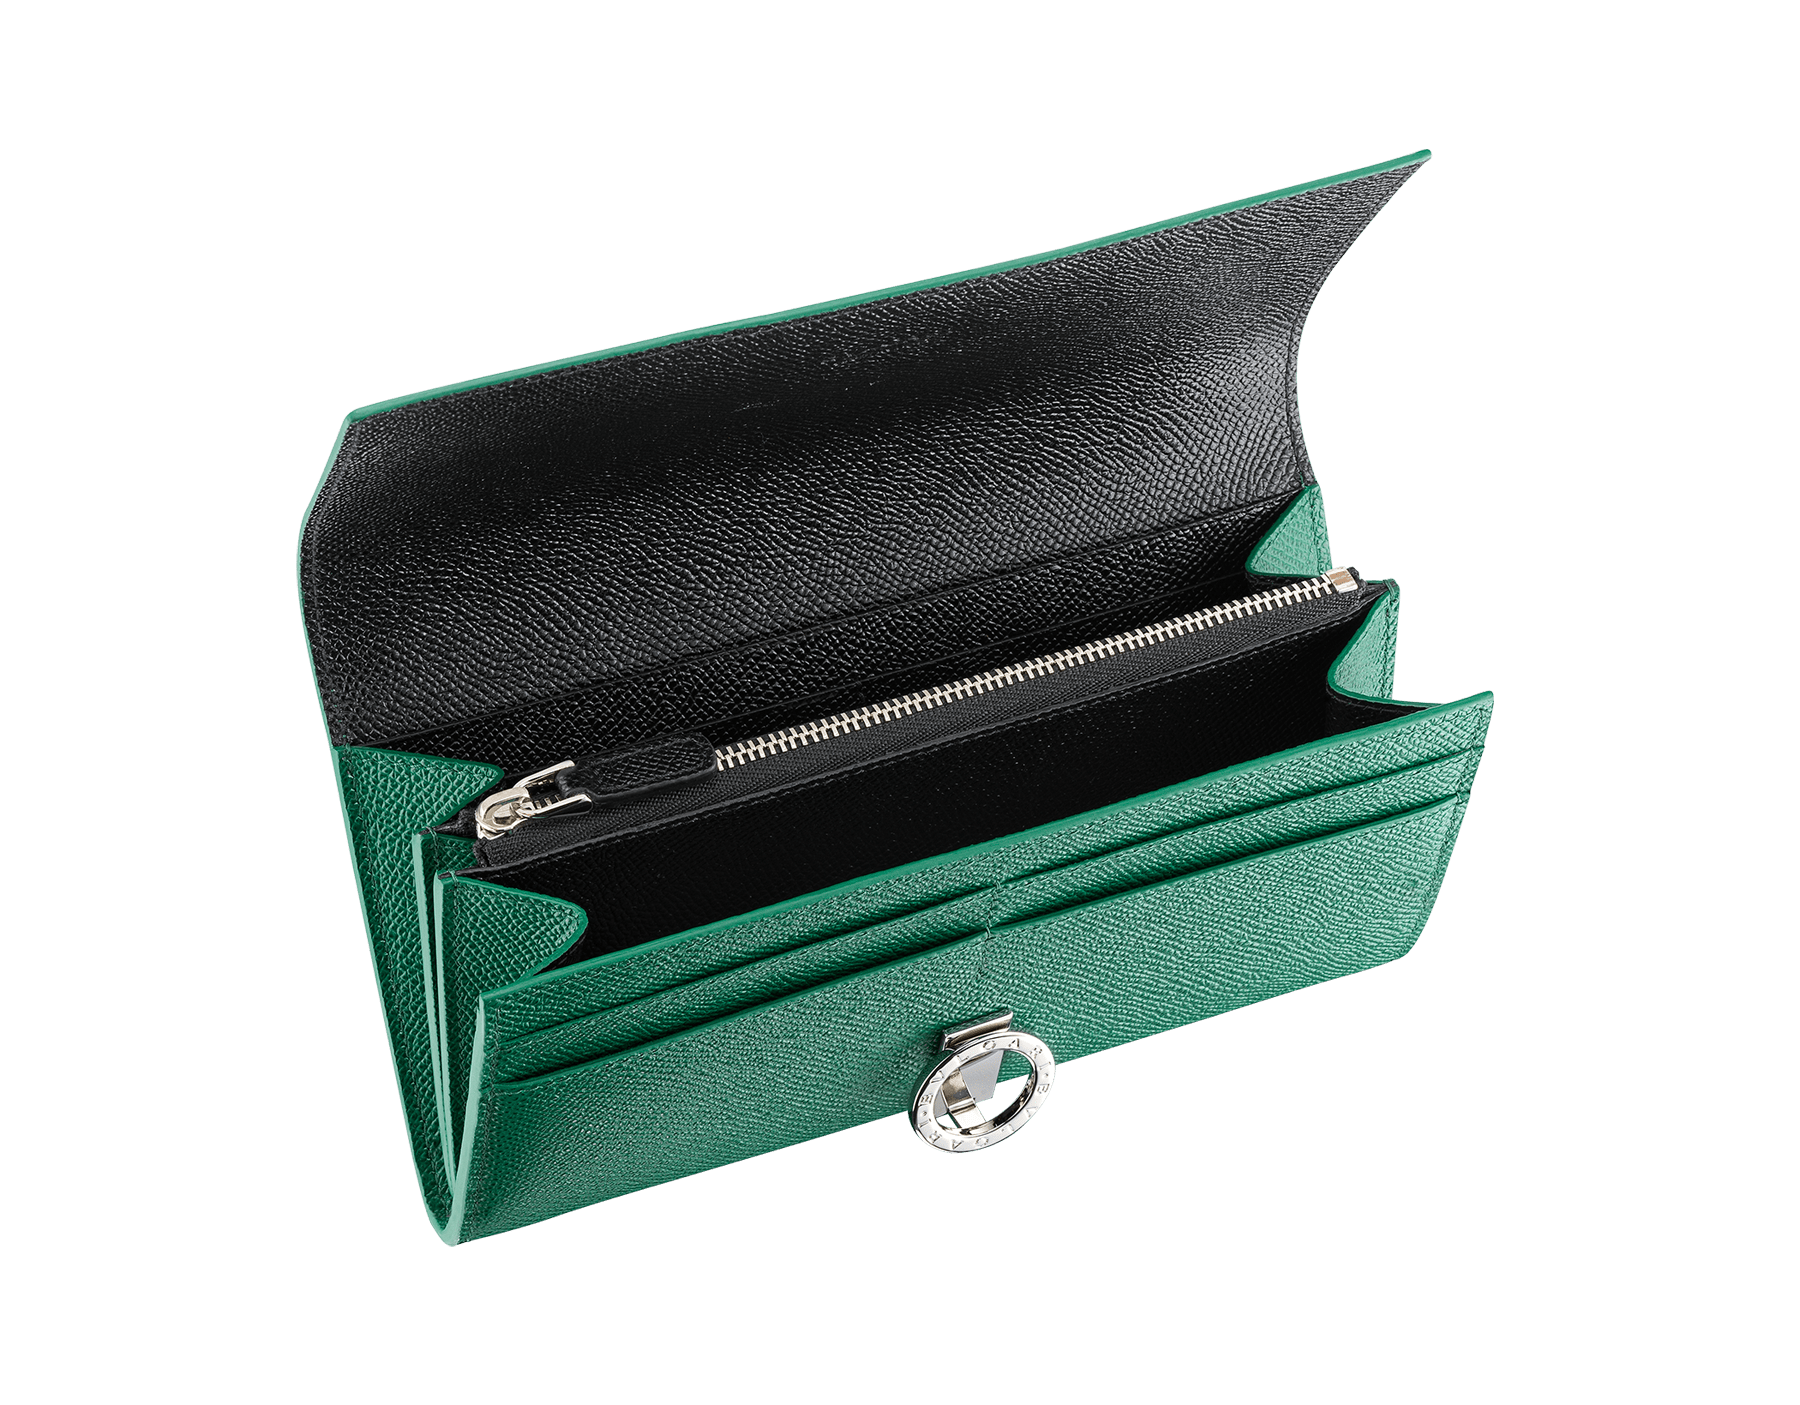 BVLGARI BVLGARI wallet pochette in emerald green and black grain calf leather. Iconic logo clip closure in palladium plated brass. 289379 image 2